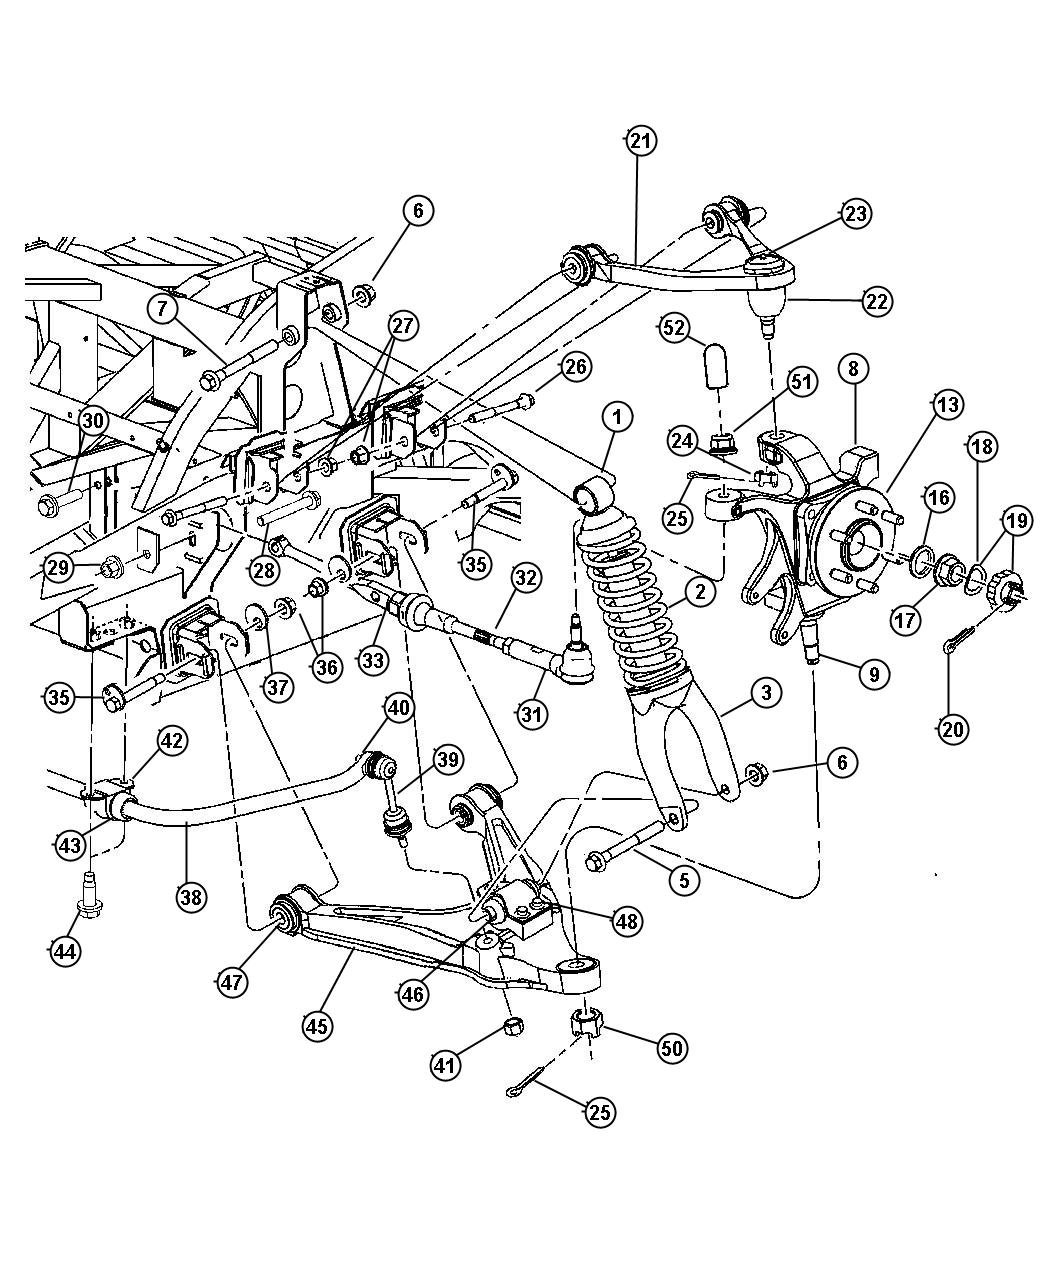 Diagram Suspension, Rear. for your 2005 Dodge Viper COMP. Coupe 8.3L V10